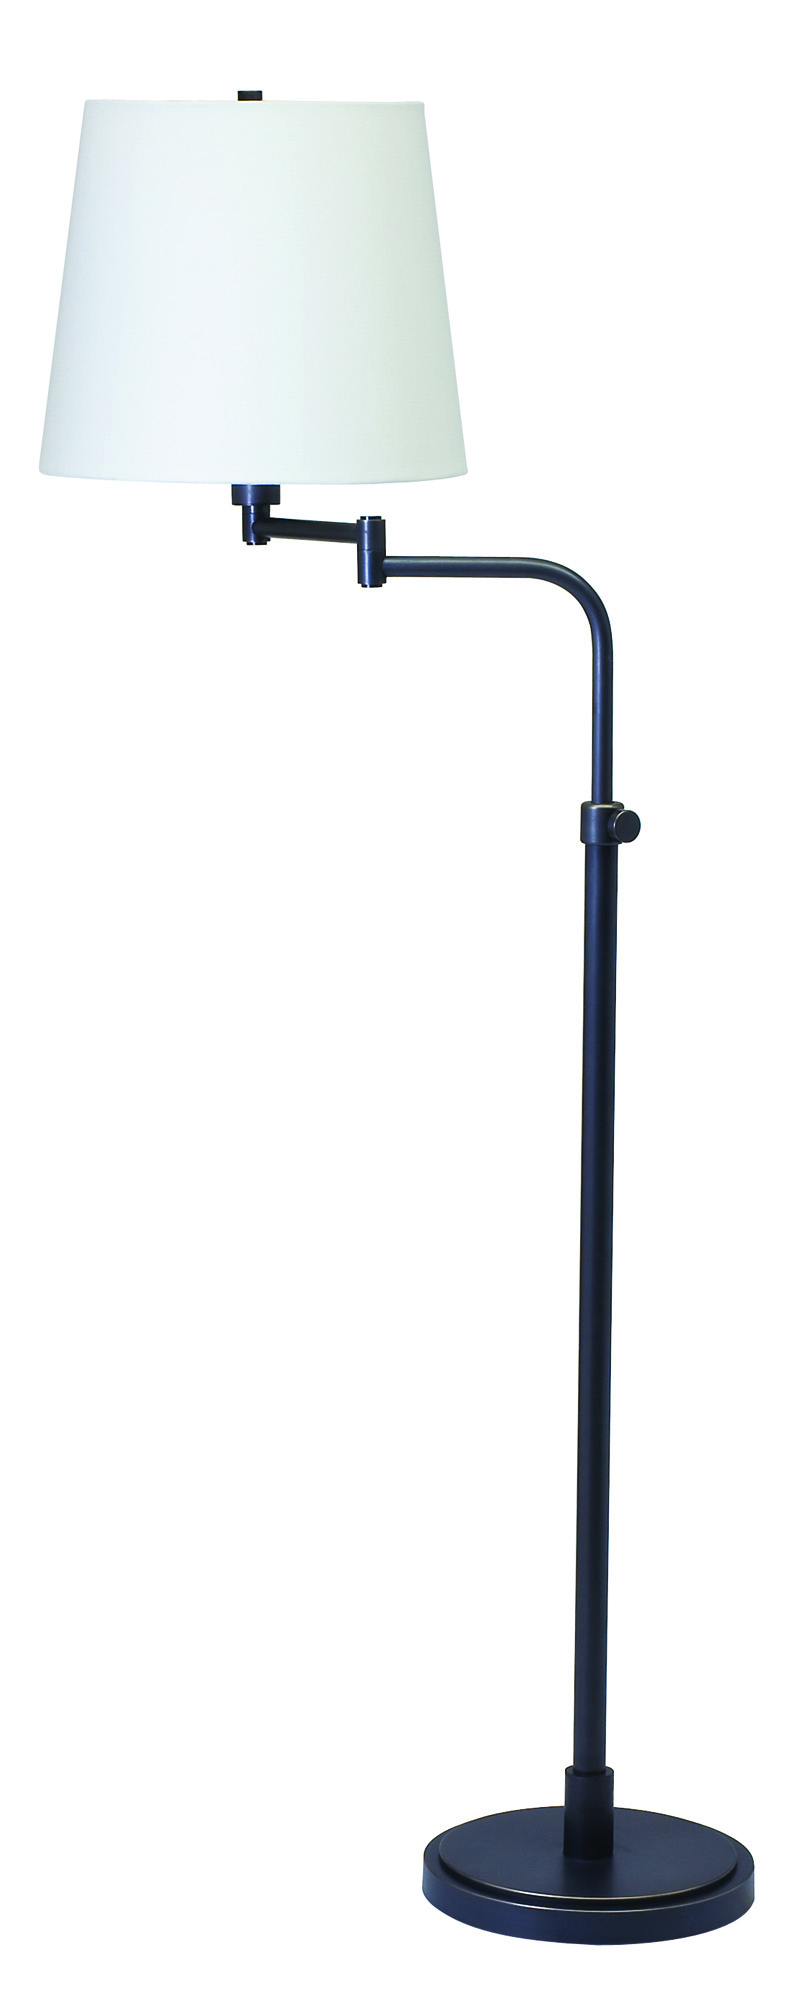 Townhouse Swing Arm Floor Lamp Oil Rubbed Bronze | House of Troy